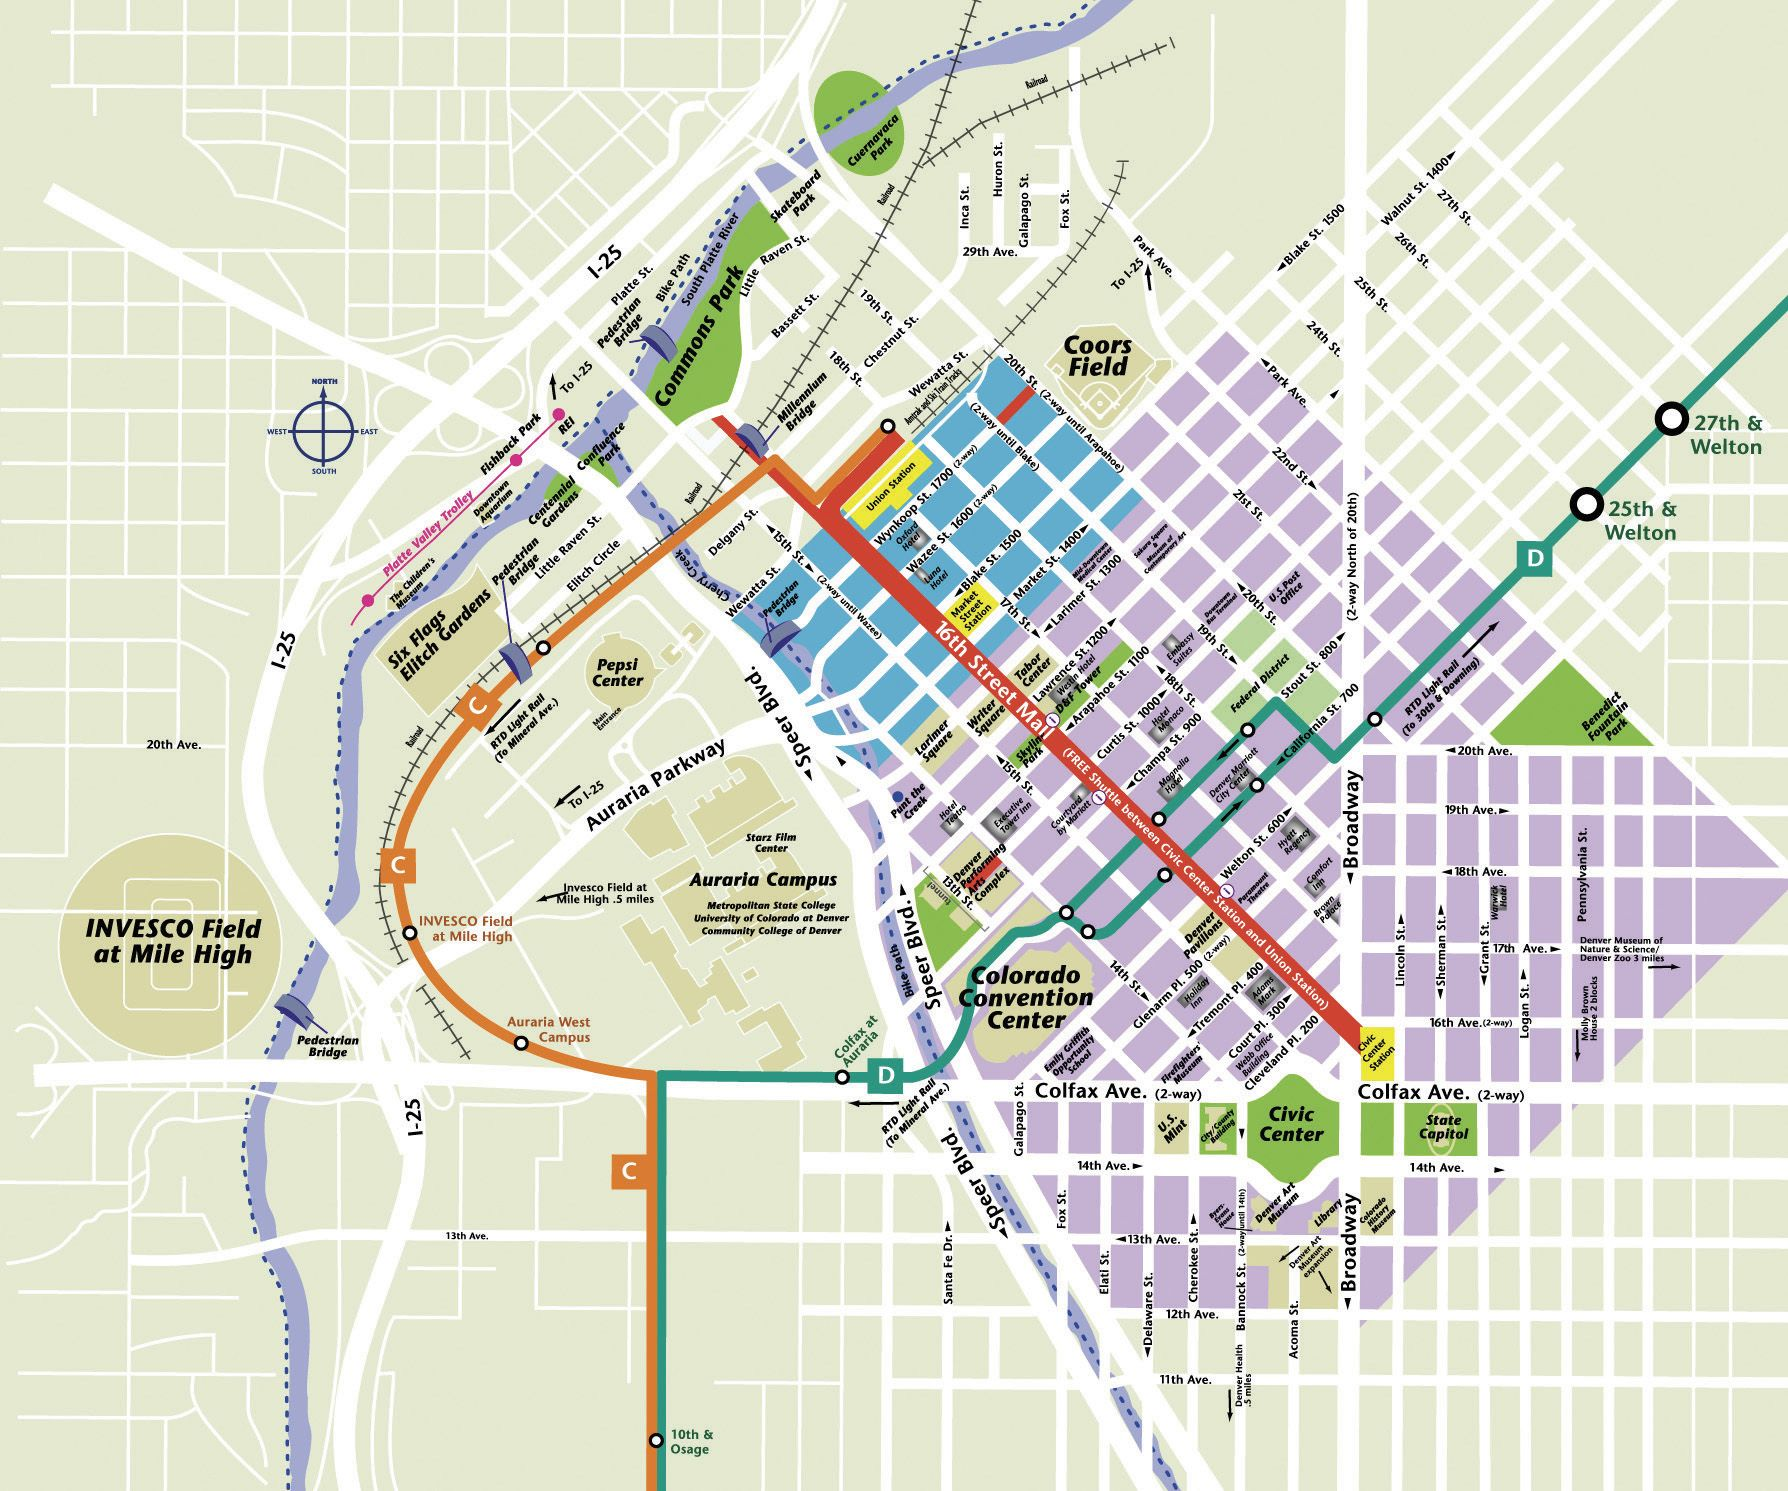 Denver Linear City Map Detroit Studio Assignment  Pinterest - Map of colorado ski resorts and cities